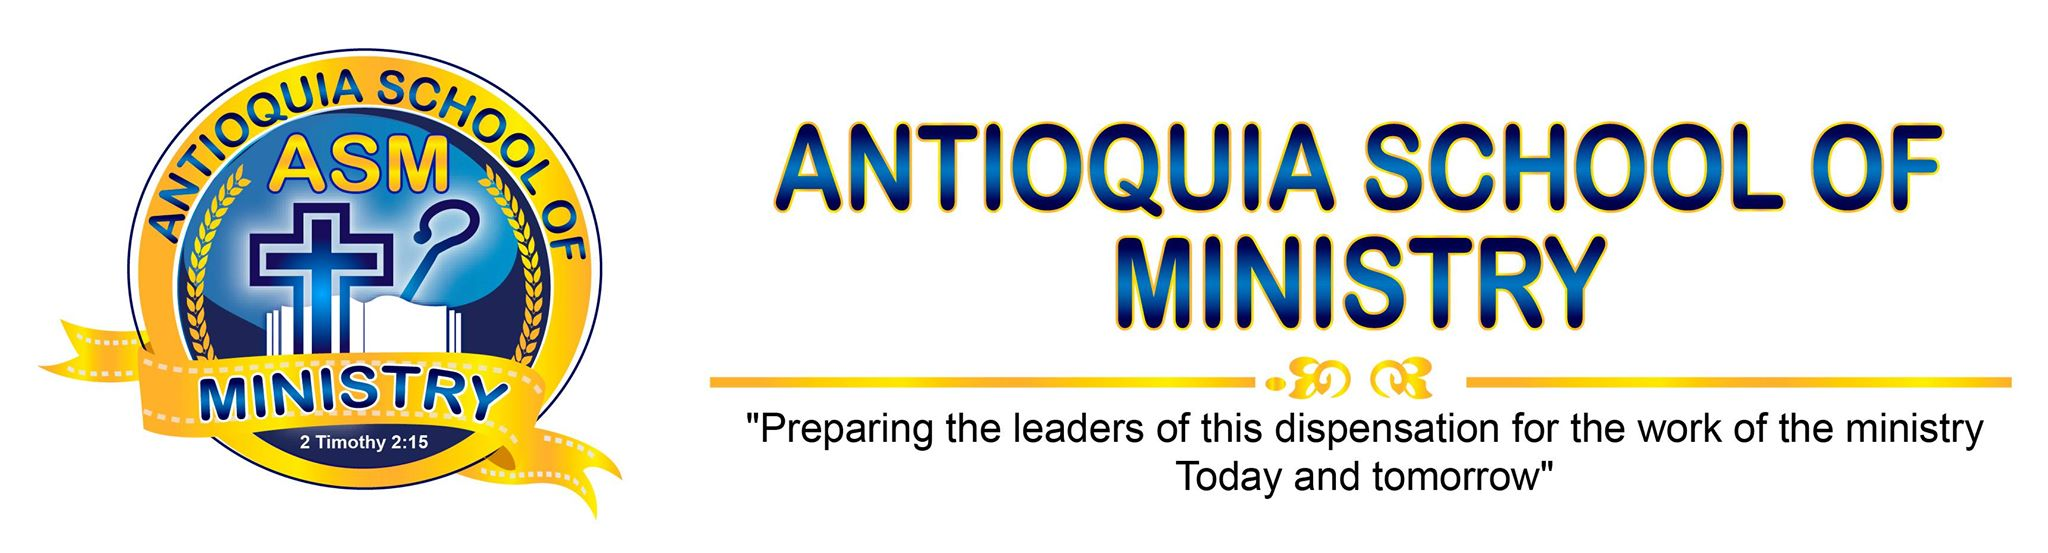 Welcome to Antioch School of Ministry! Please log in to explore our courses